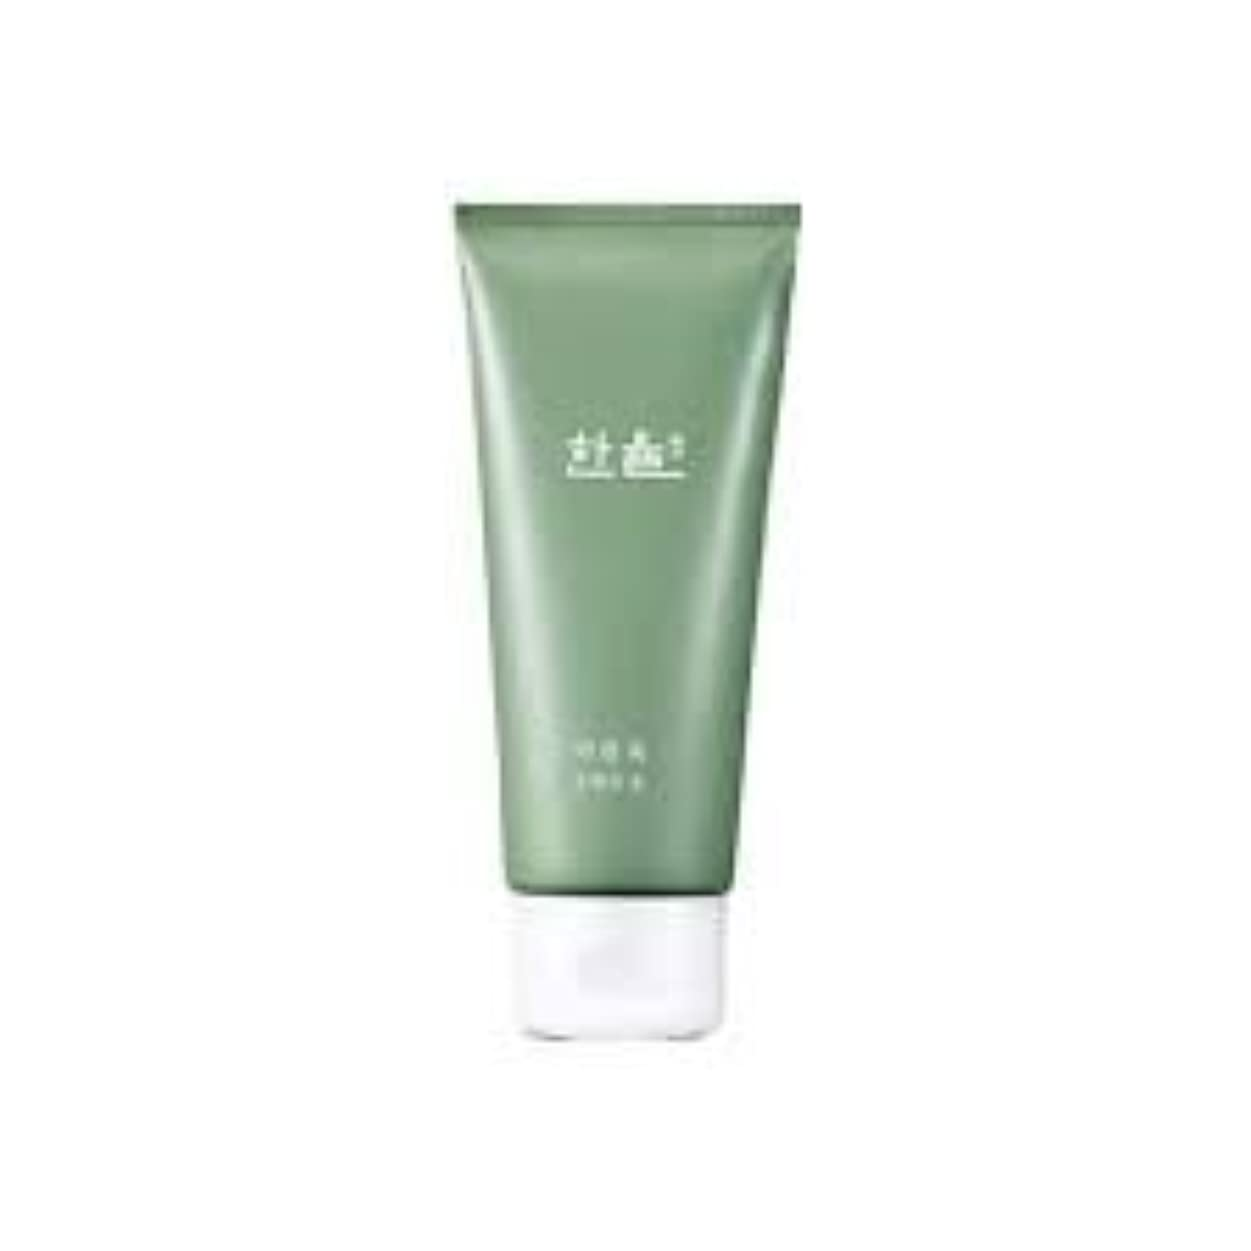 Hanyul Pure Artemisia Cleansing Foam 6.1 Ounce [並行輸入品]